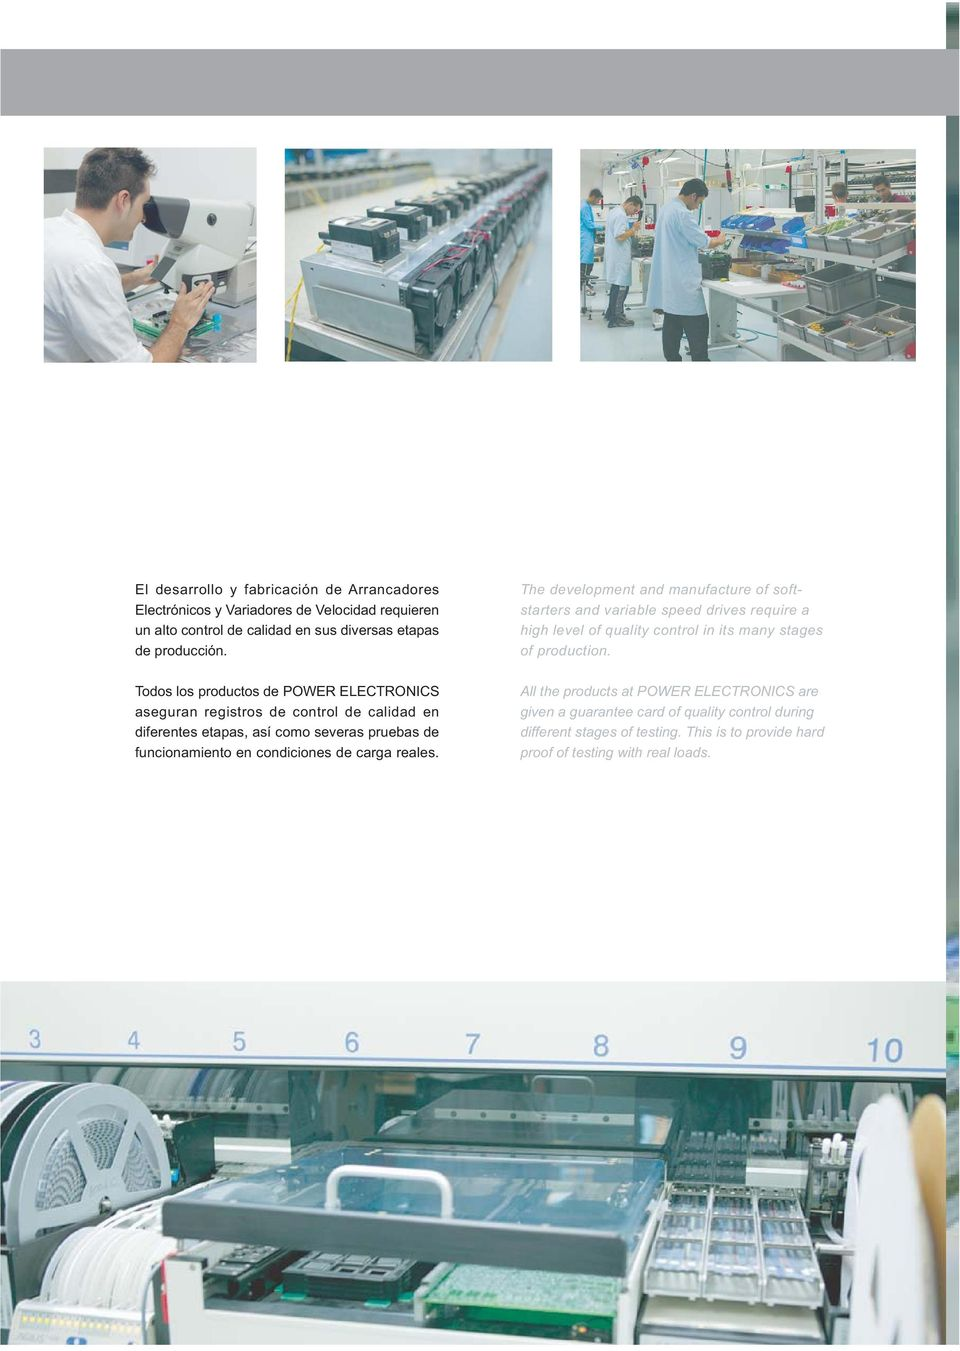 carga reales. The development and manufacture of softstarters and variable speed drives require a high level of quality control in its many stages of production.